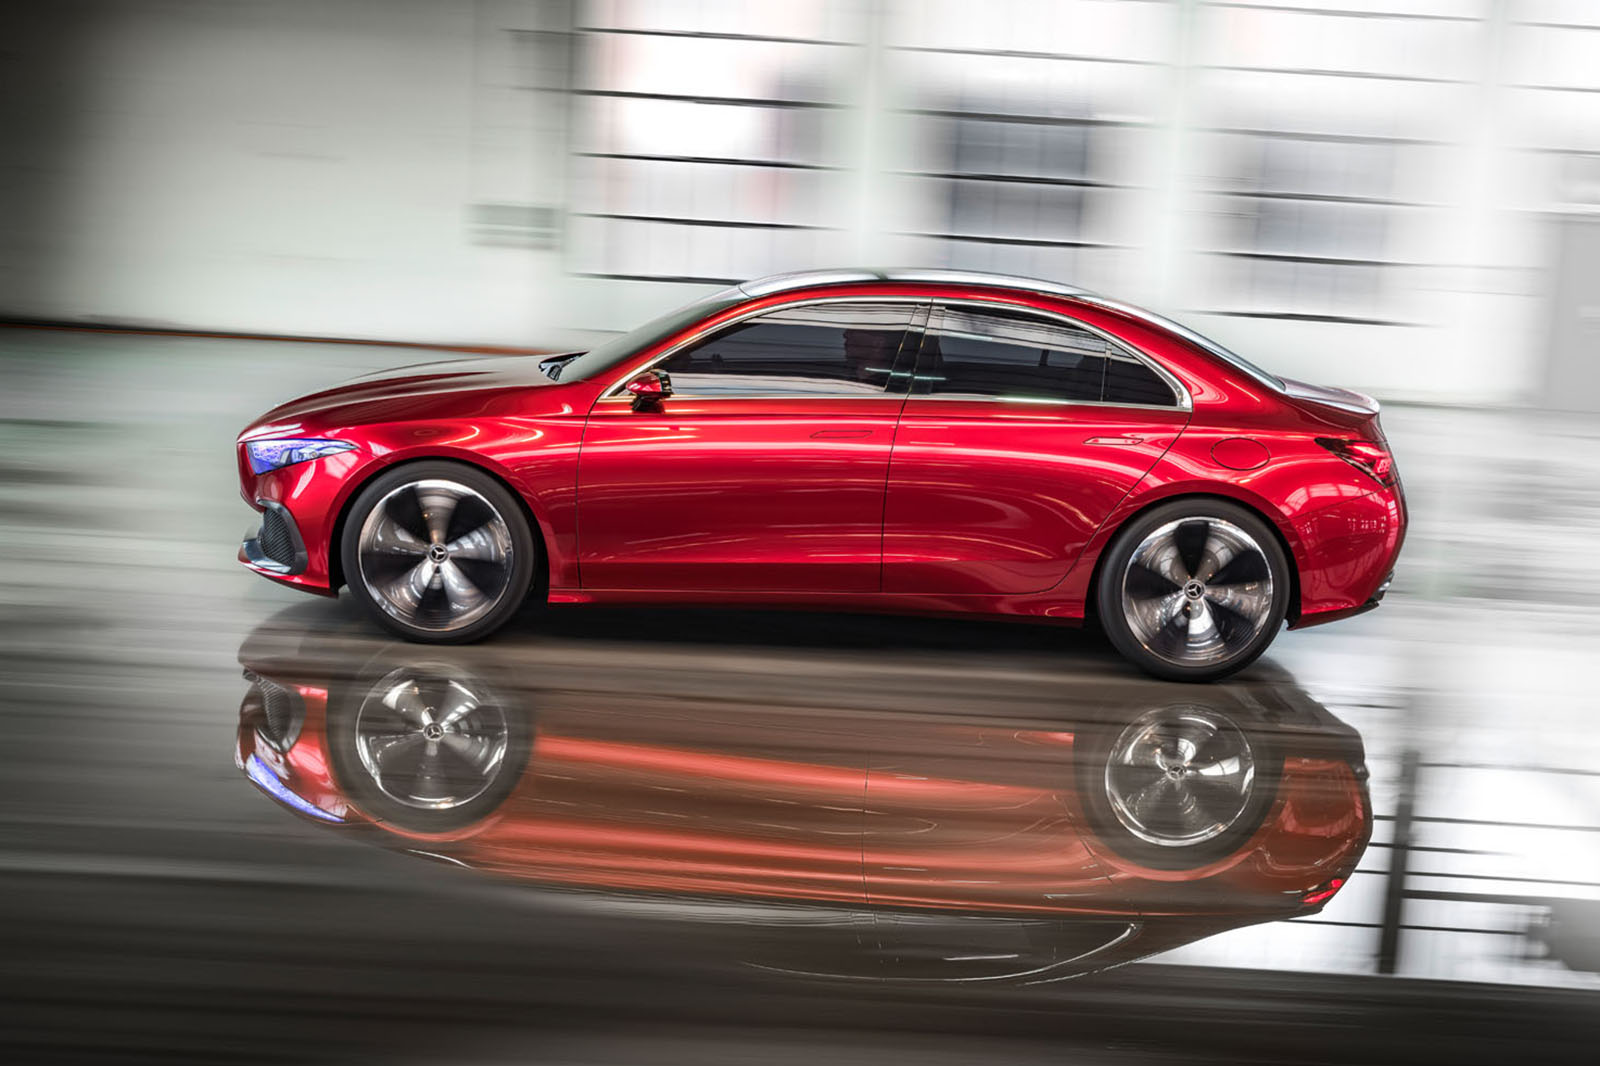 Mercedes benz concept a saloon brings the fight to bmw for Mercedes benz small car price